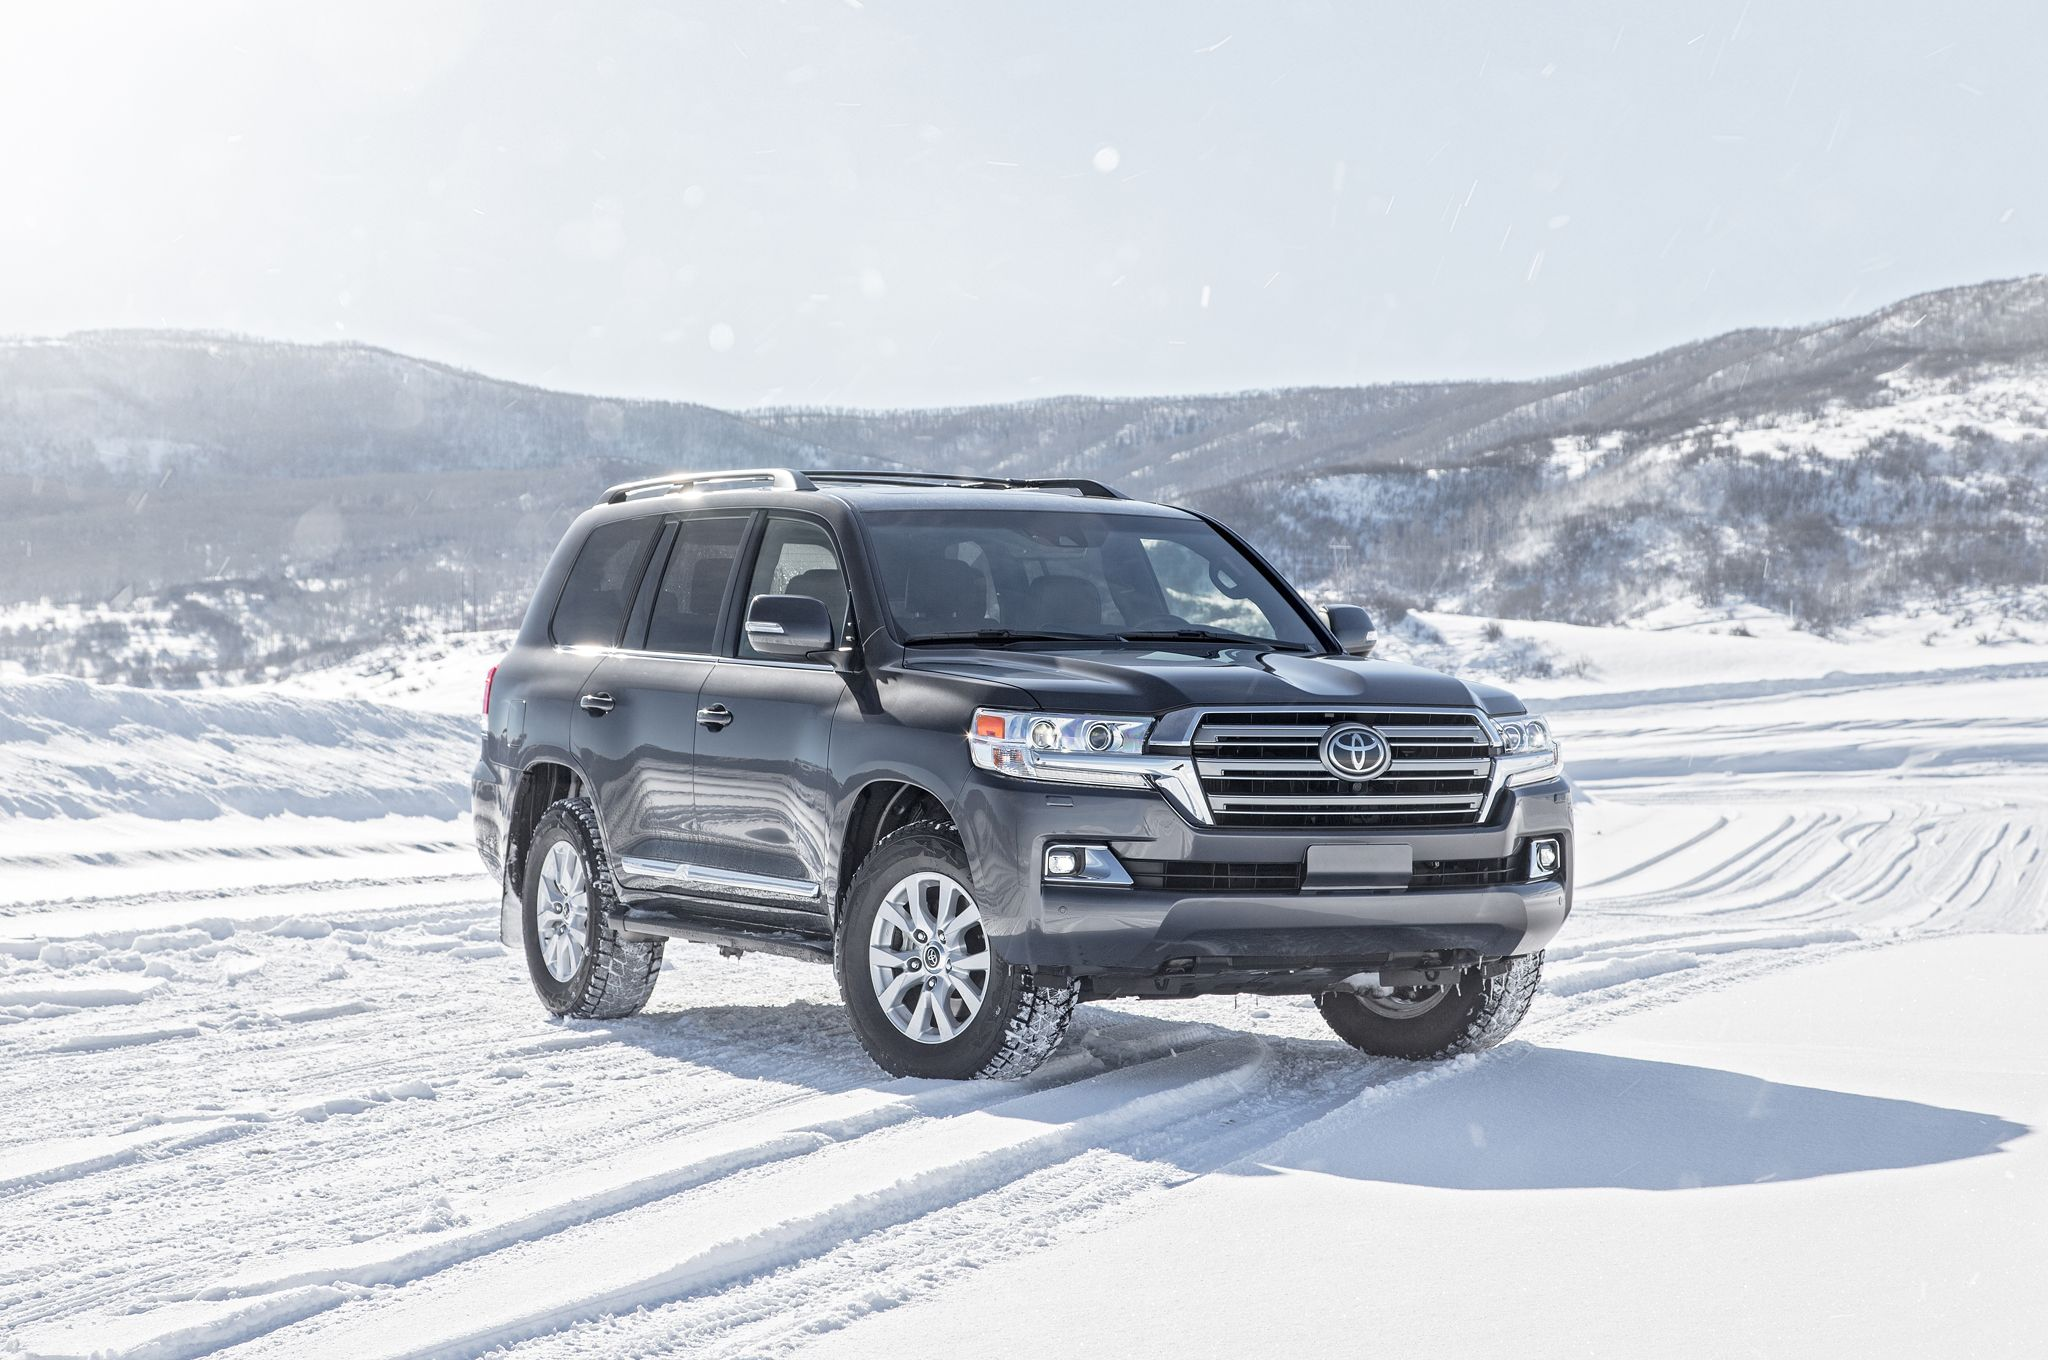 Toyota land cruiser 200 approved http autotras com auto pinterest land cruiser 200 toyota land cruiser and land cruiser